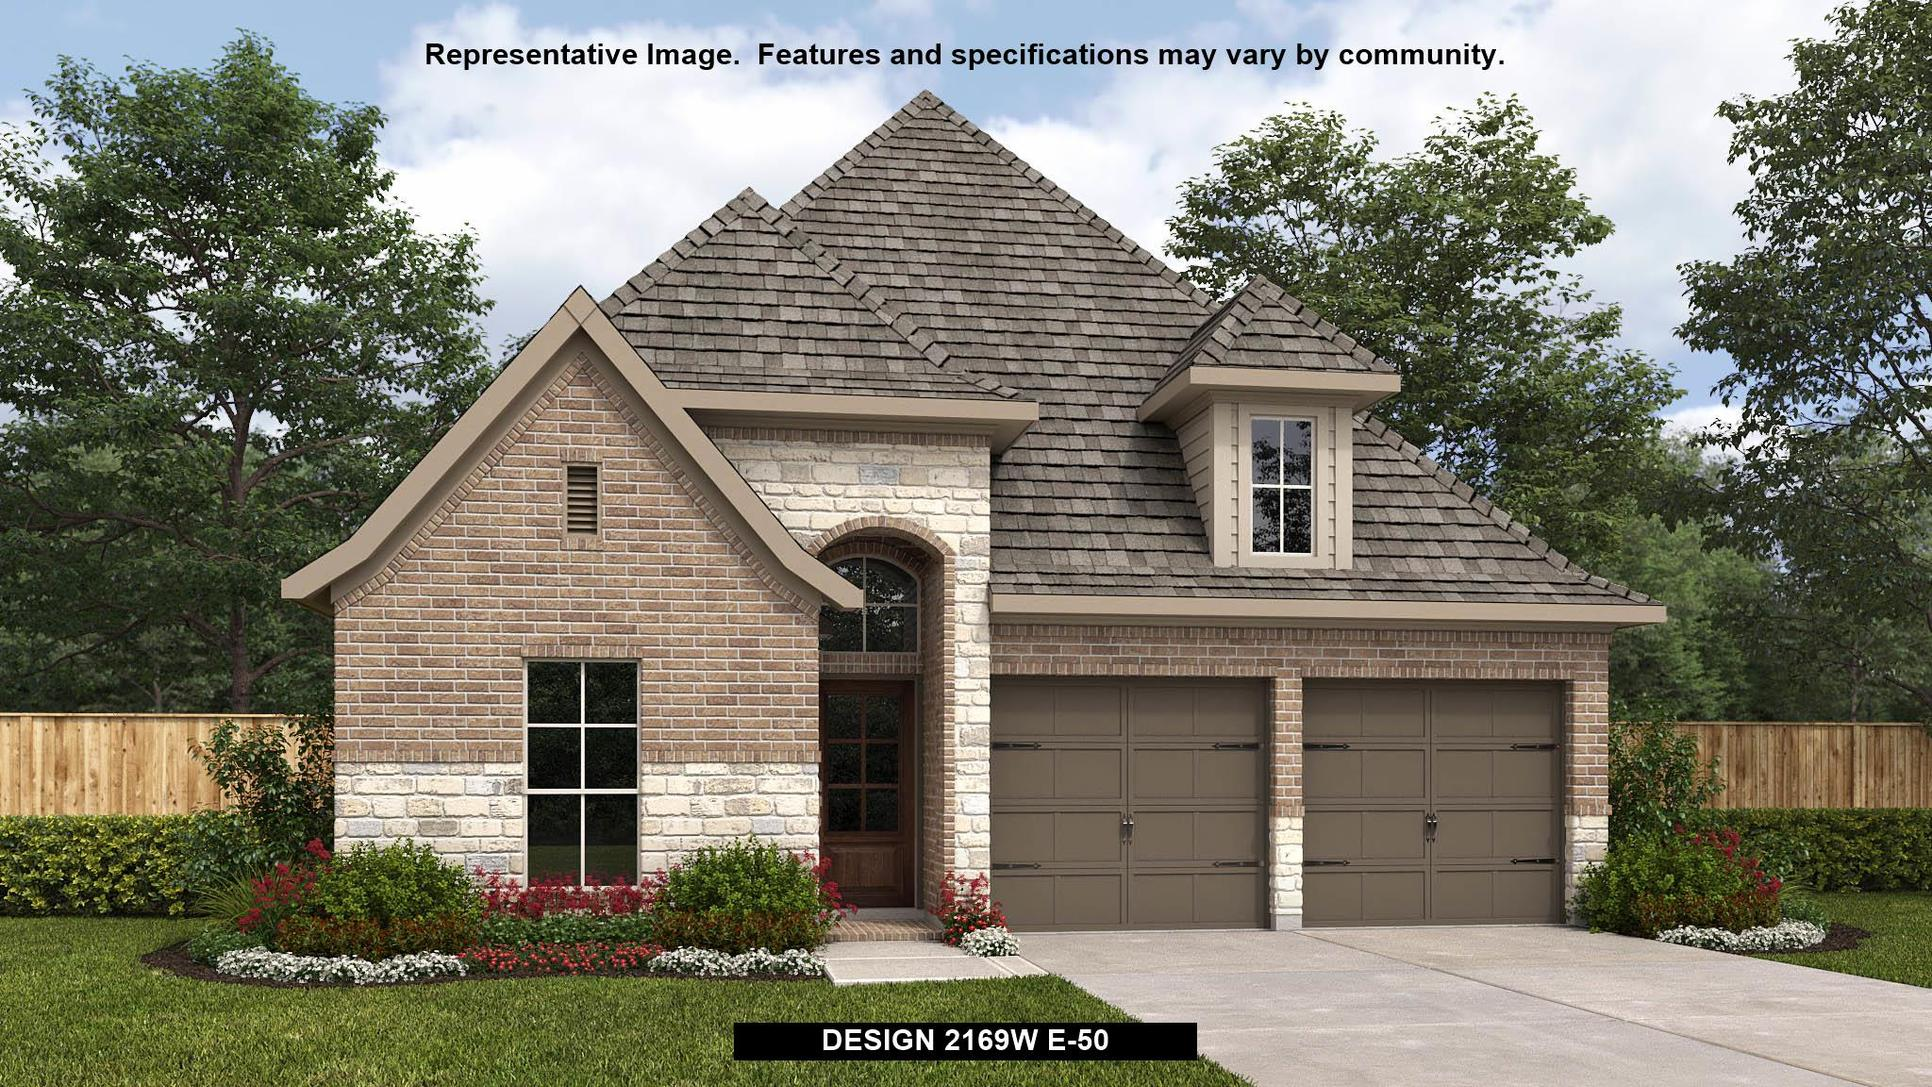 Plan 2169W:Representative photo.  Features and specifications may vary by community.